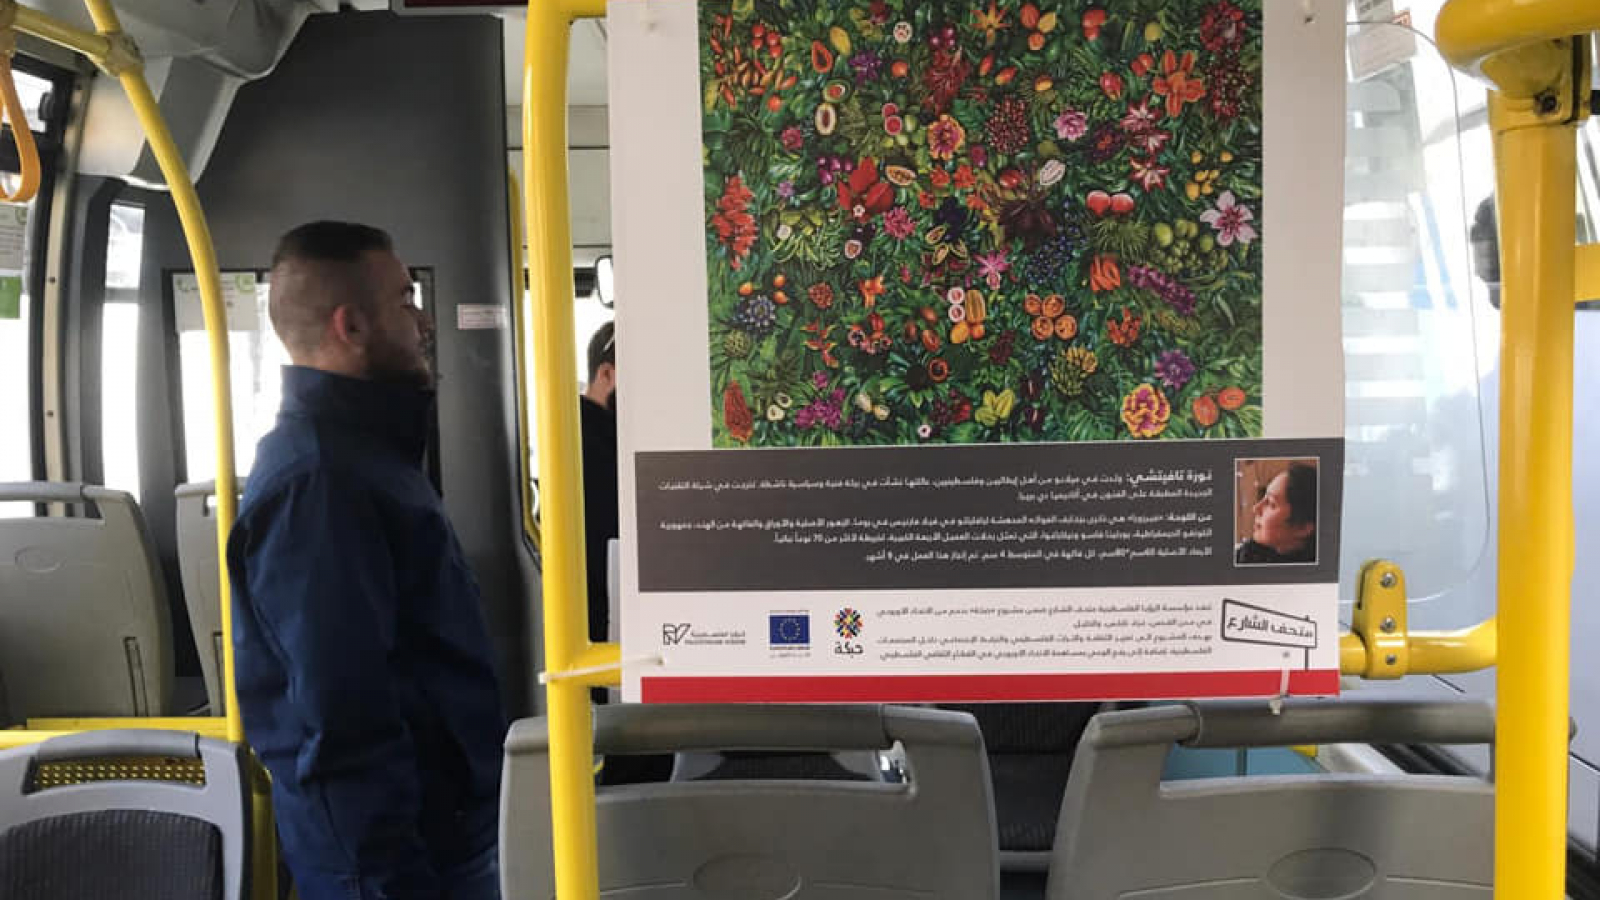 The Habkeh project, a joint initiative between EU and Palestinian artists